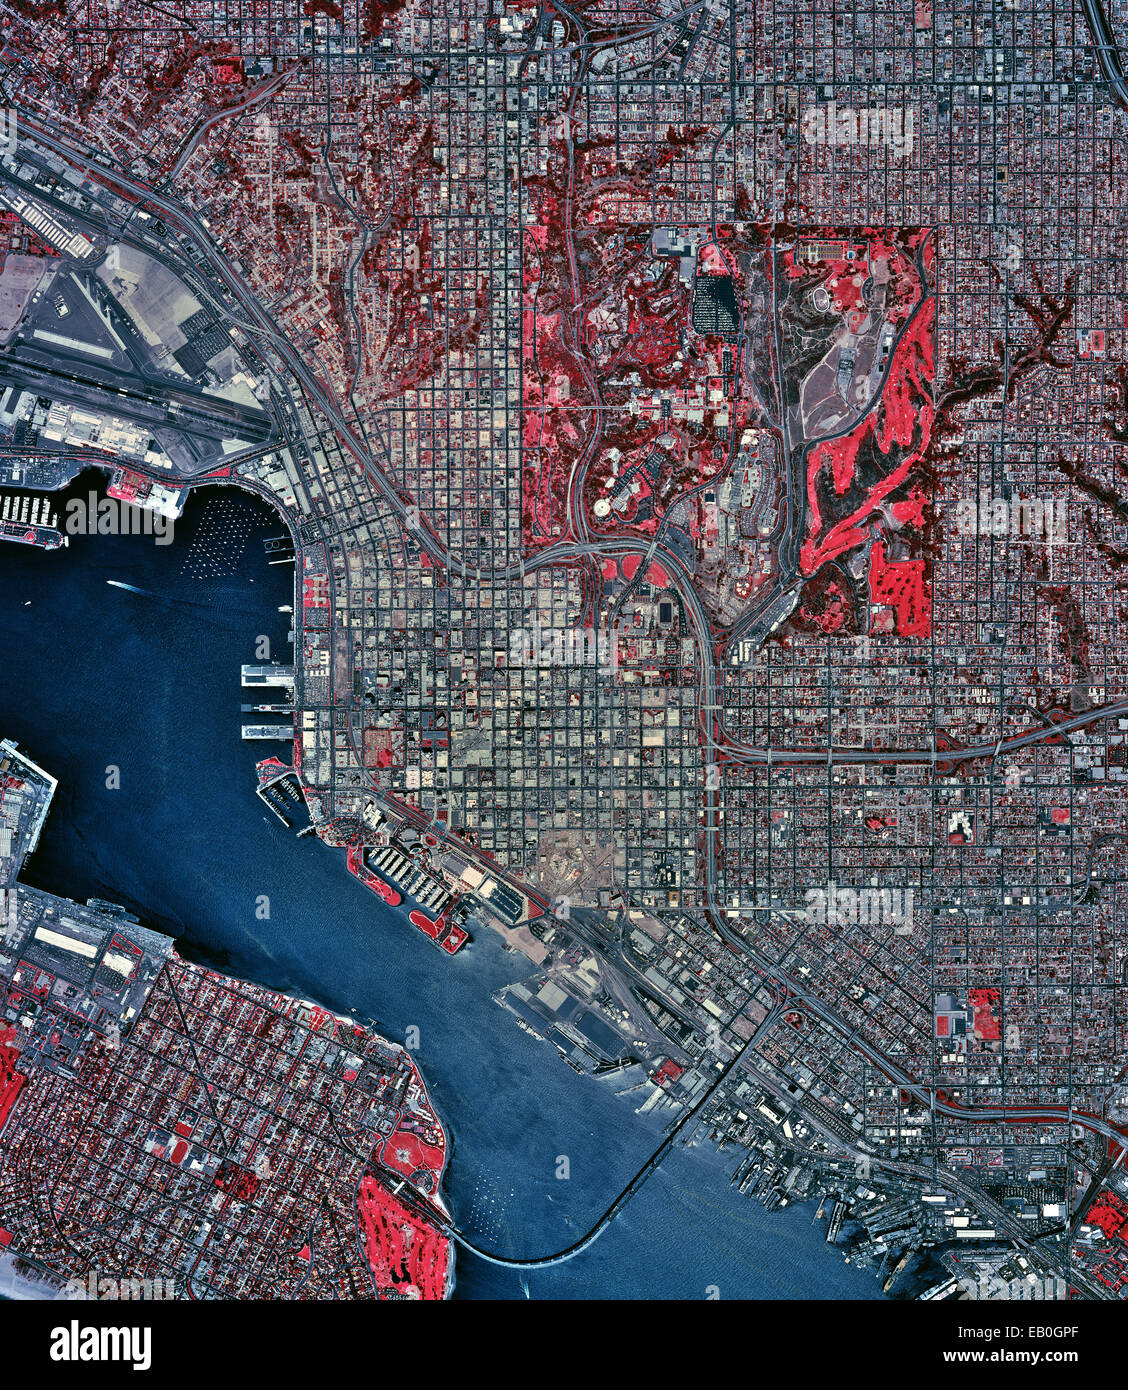 historical infrared aerial photograph of San Diego, California, 2002 - Stock Image